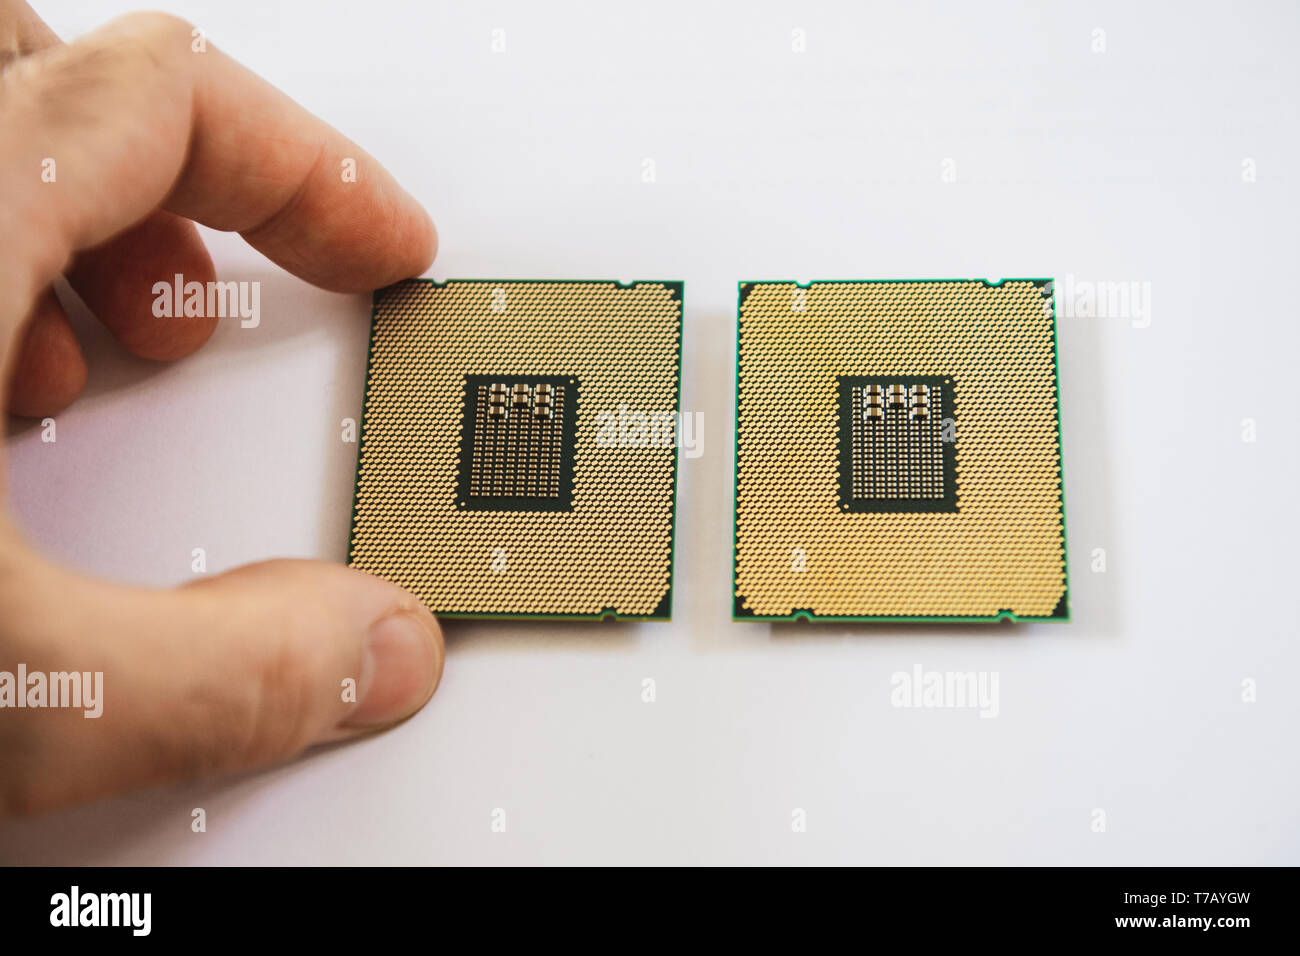 Man hand comparing two new powerful workstation CPU processors before service new computer workstation server - Stock Image